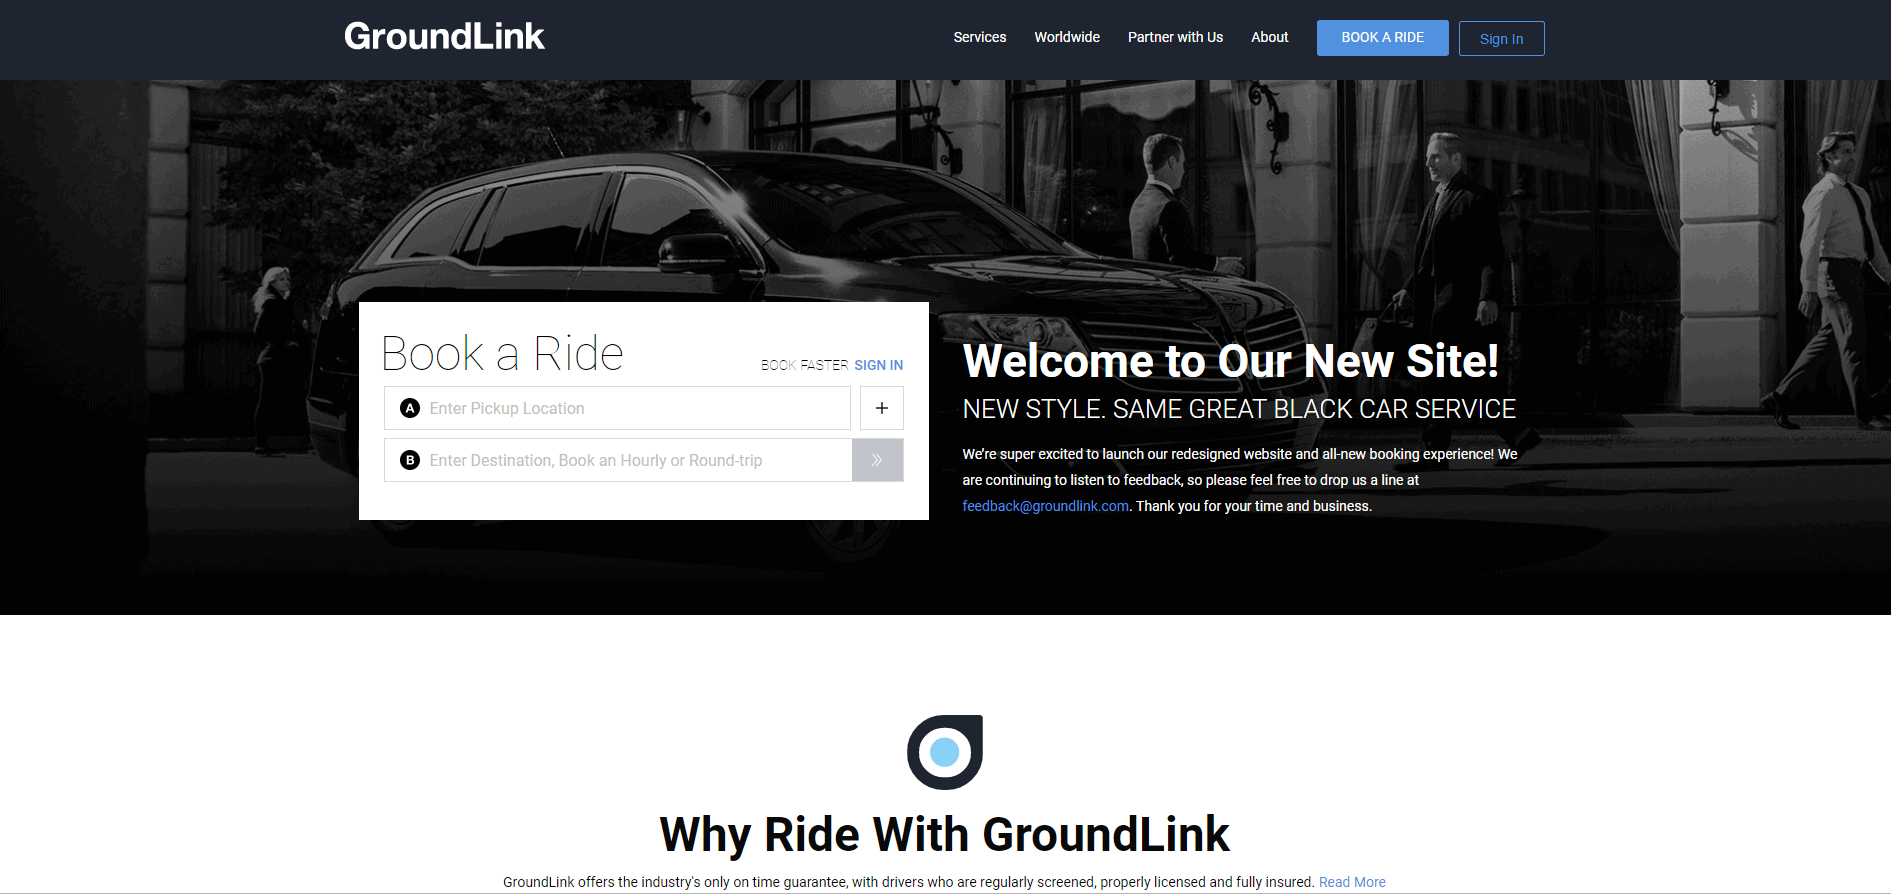 groundlink black car service review